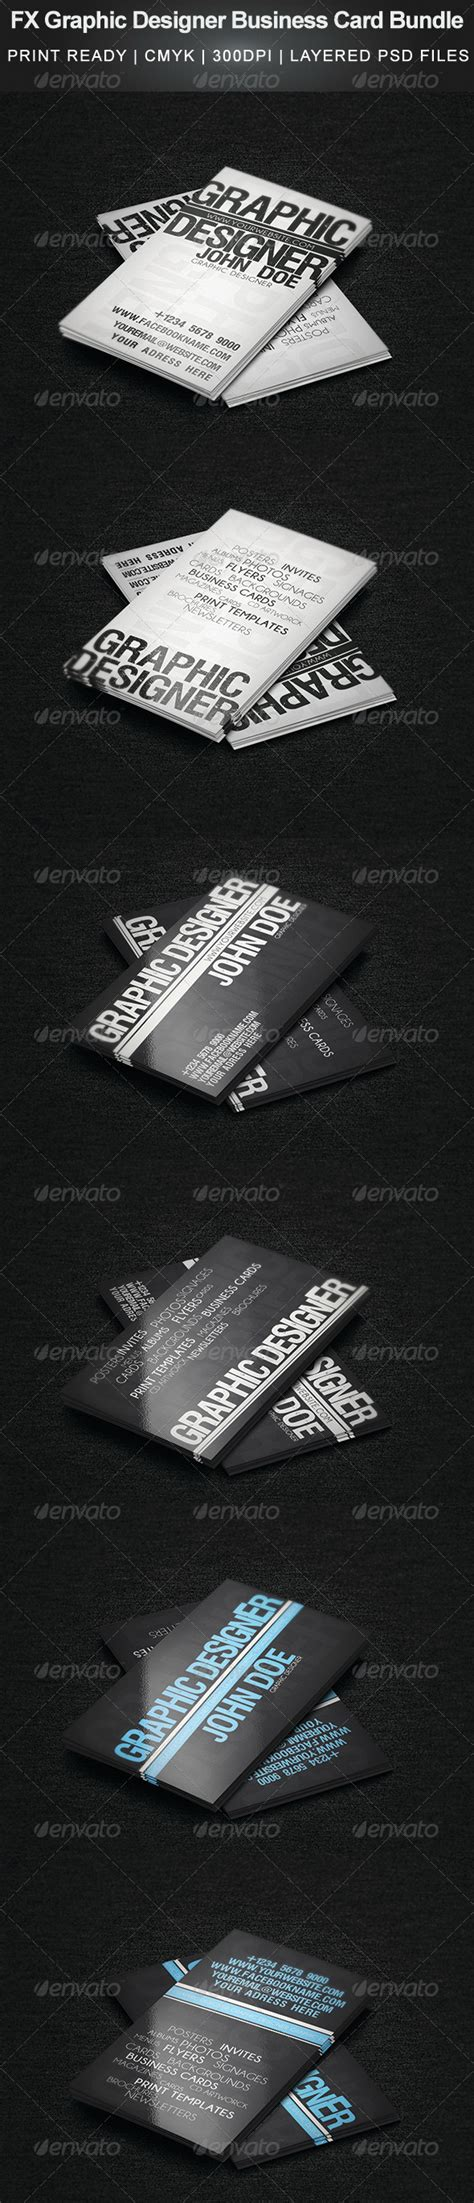 great fx business card template fx graphic designer business card bundle graphicriver